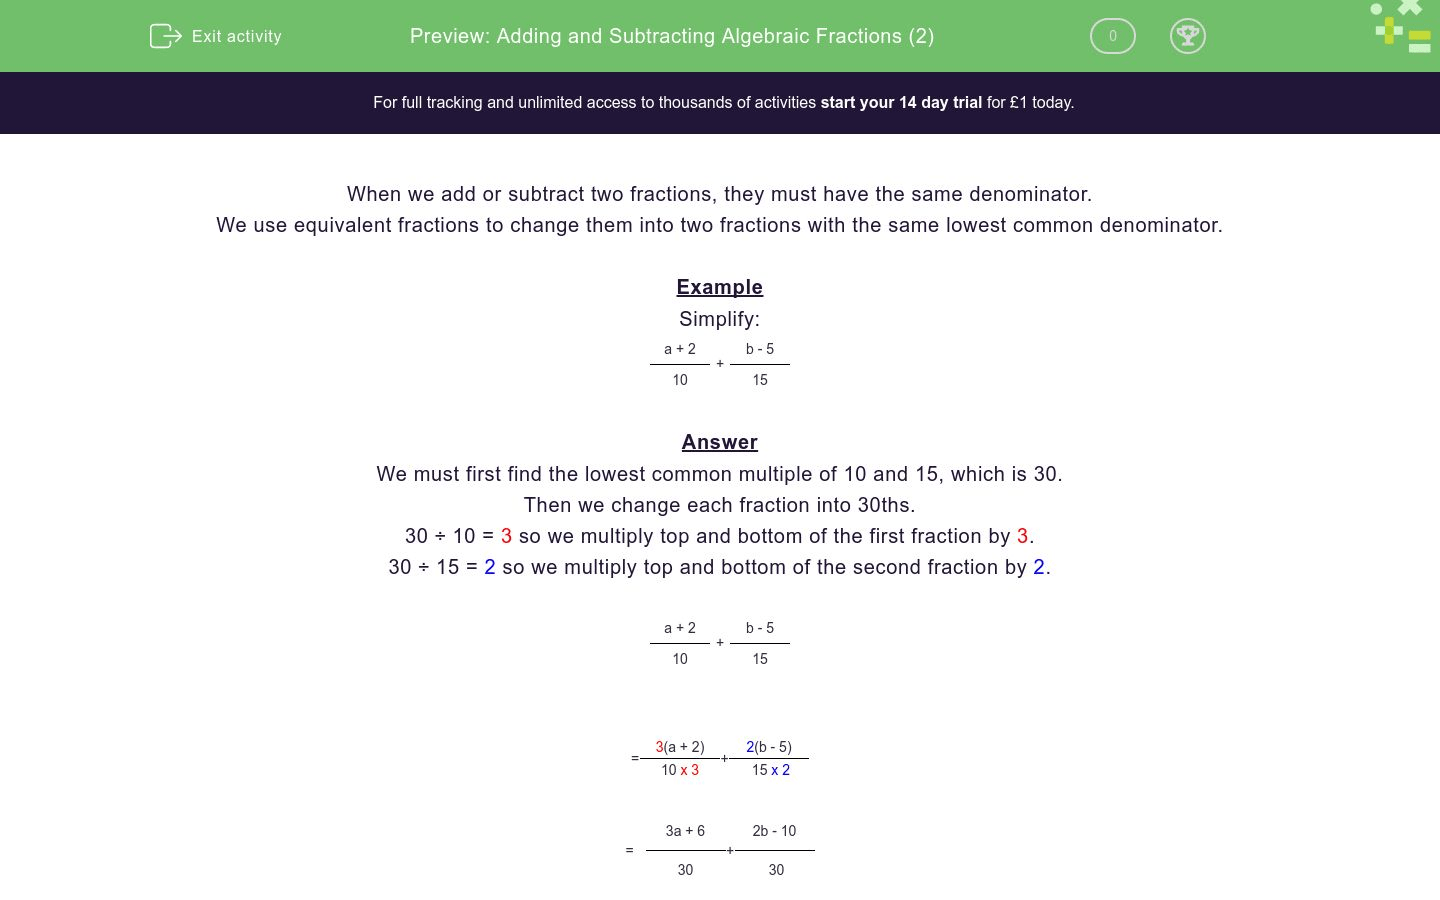 Adding And Subtracting Algebraic Fractions 2 Worksheet